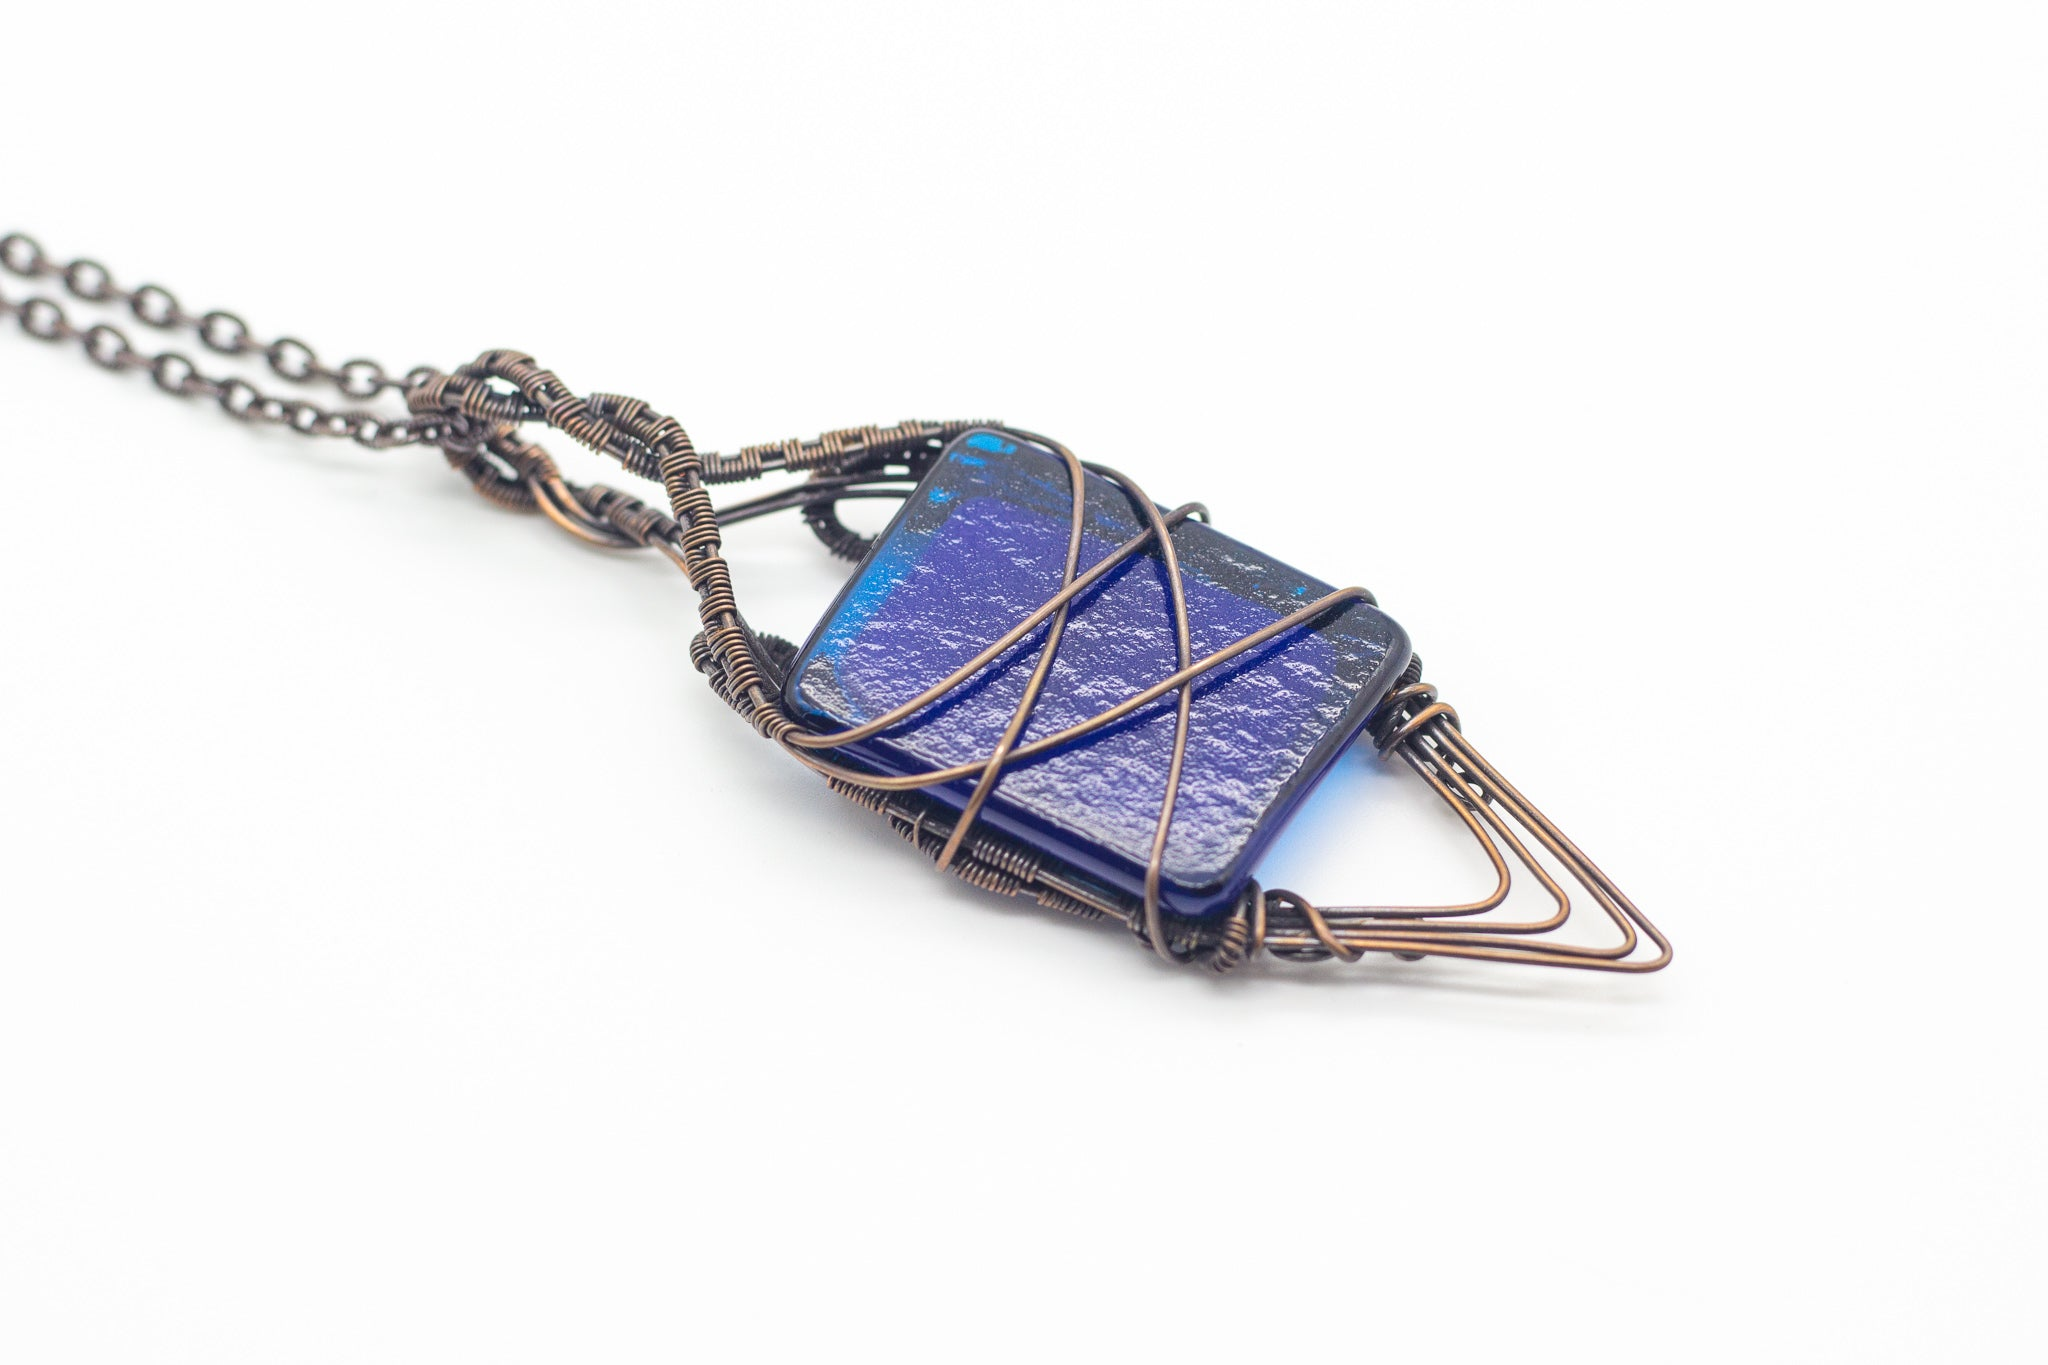 streaked-blue-double-sided-copper-pendant-nymph-in-the-woods-jewelry